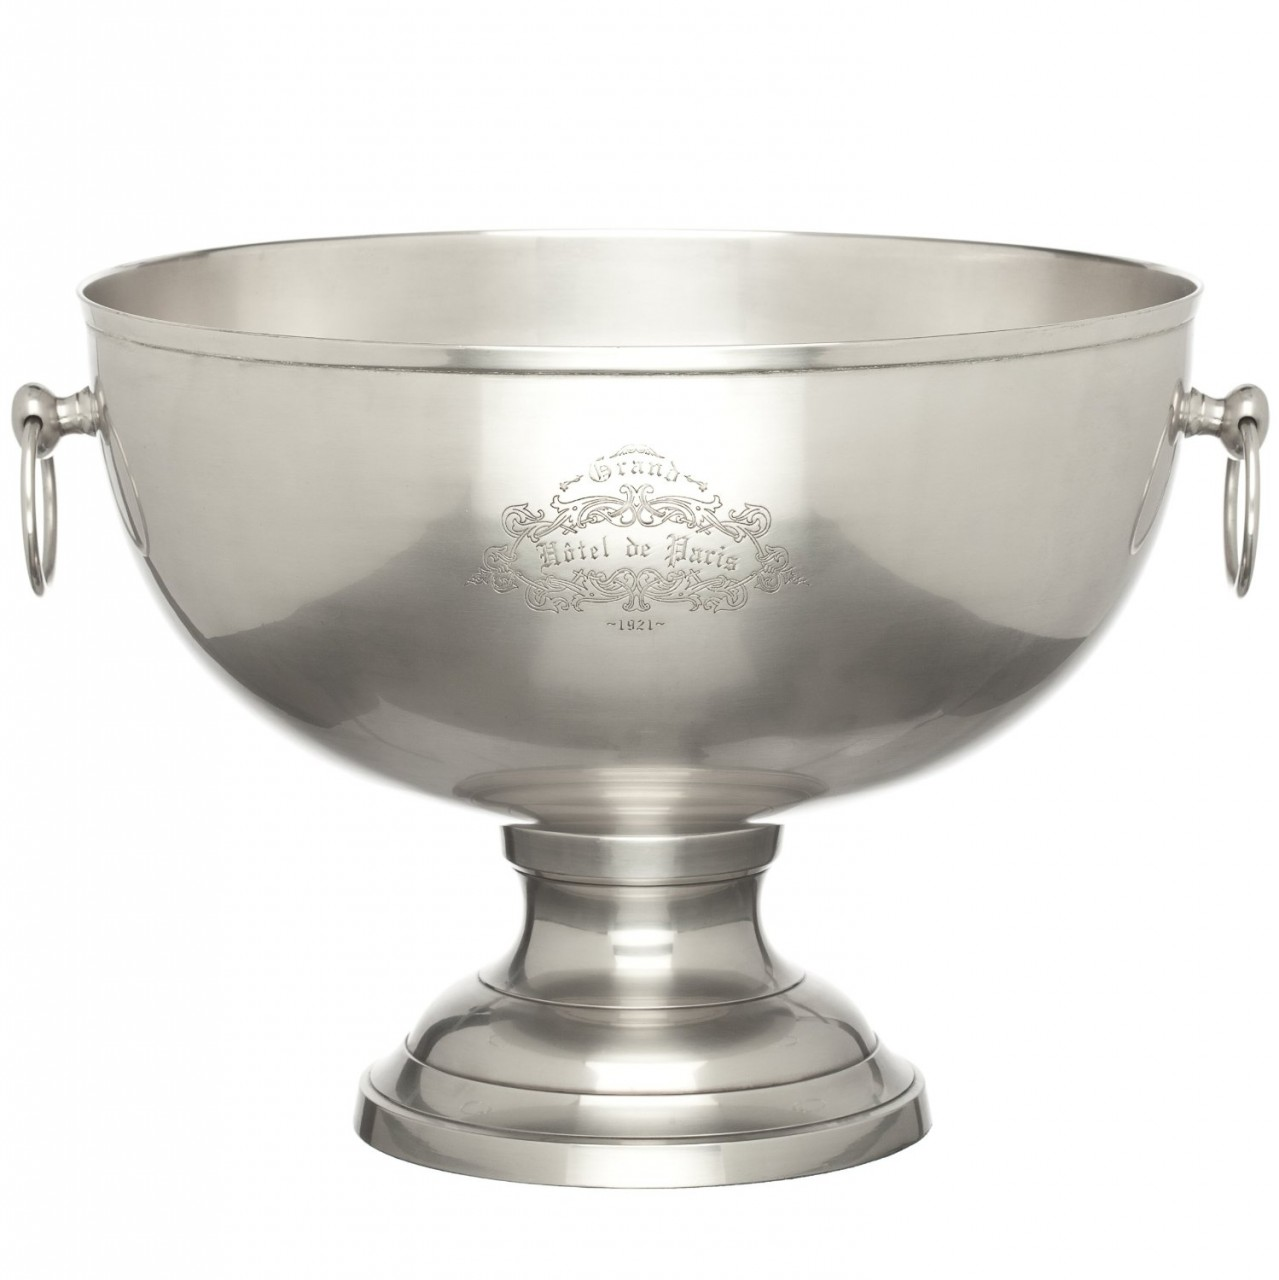 Palais royal grand cafe pewter finish footed centerpiece bowl - Footed bowl centerpiece ...